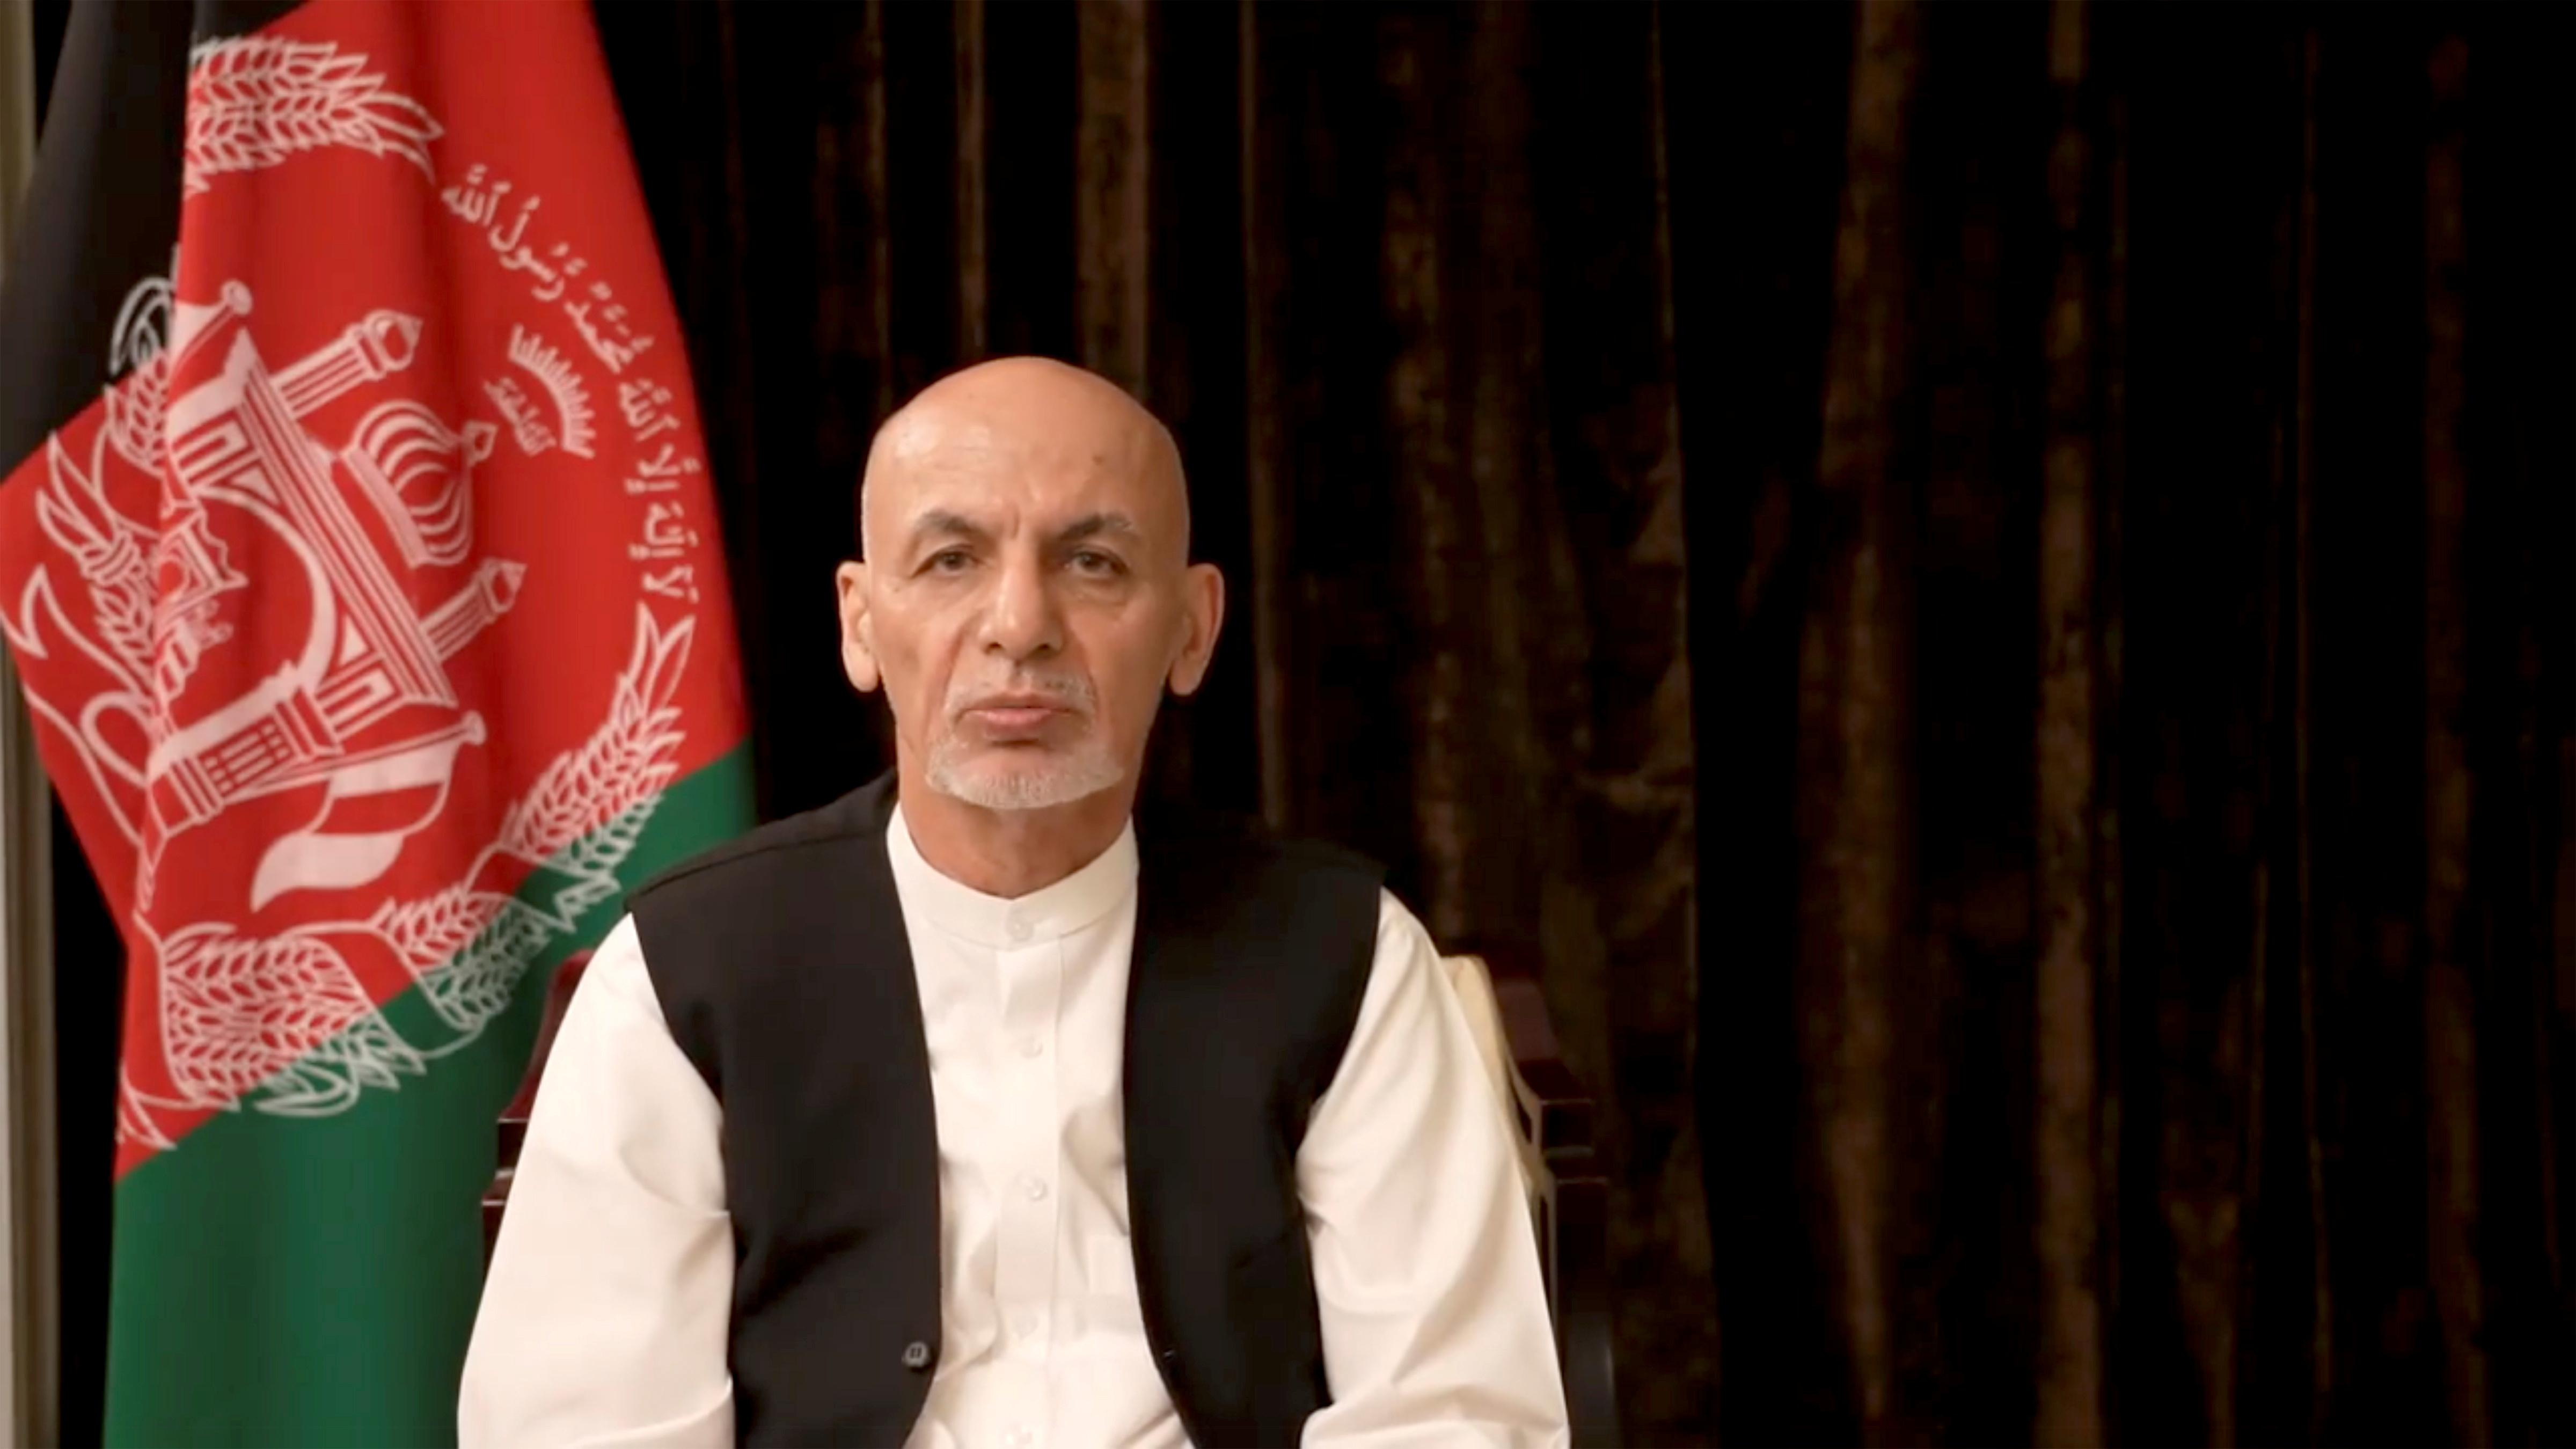 Afghan President Ashraf Ghani makes an address about the latest developments in the country from exile in United Arab Emirates, in this screen grab obtained from a social media video on August 18, 2021. Facebook/Ashraf Ghani/via REUTERS